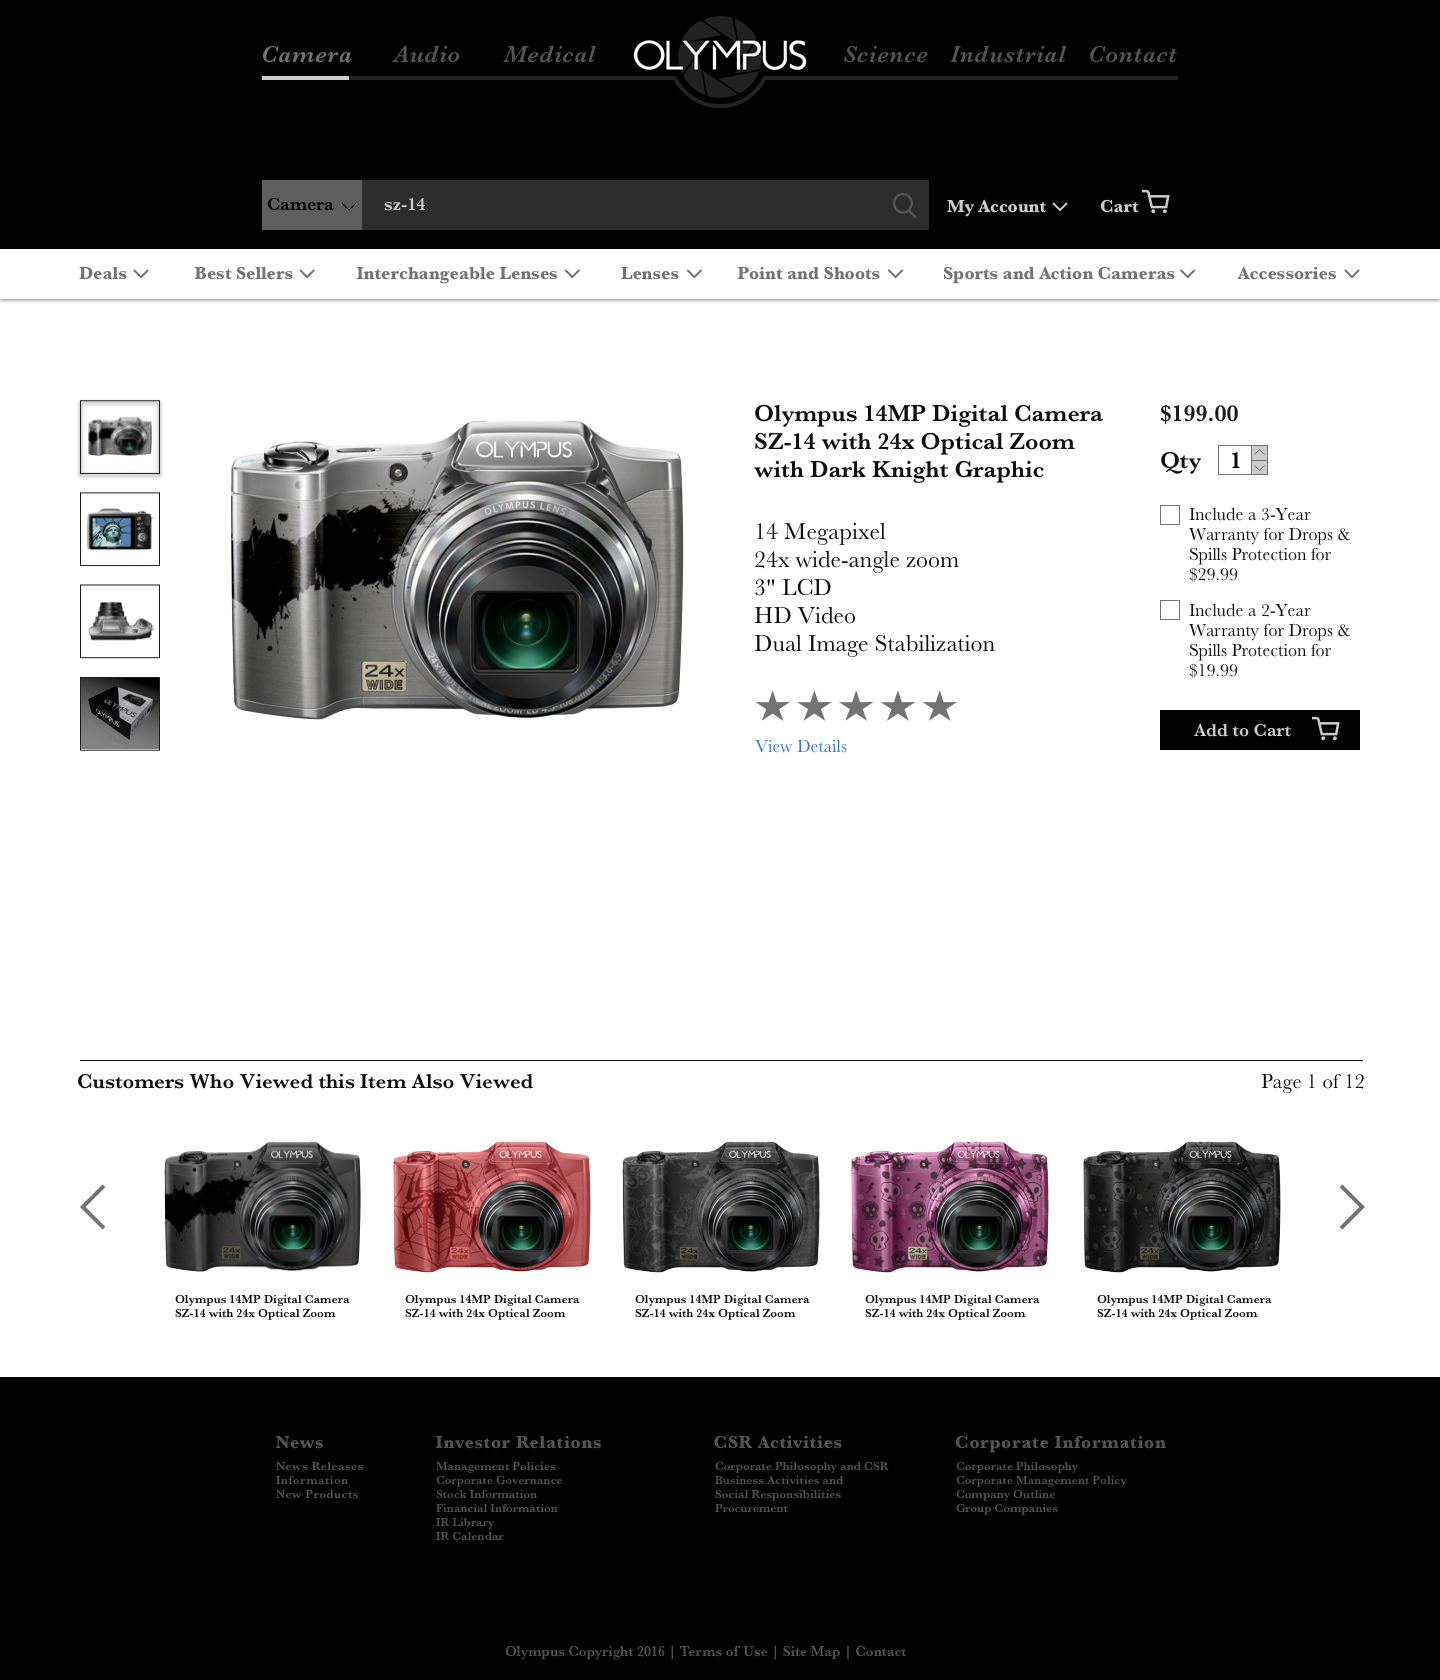 product page - Best Camera For Medical Photography